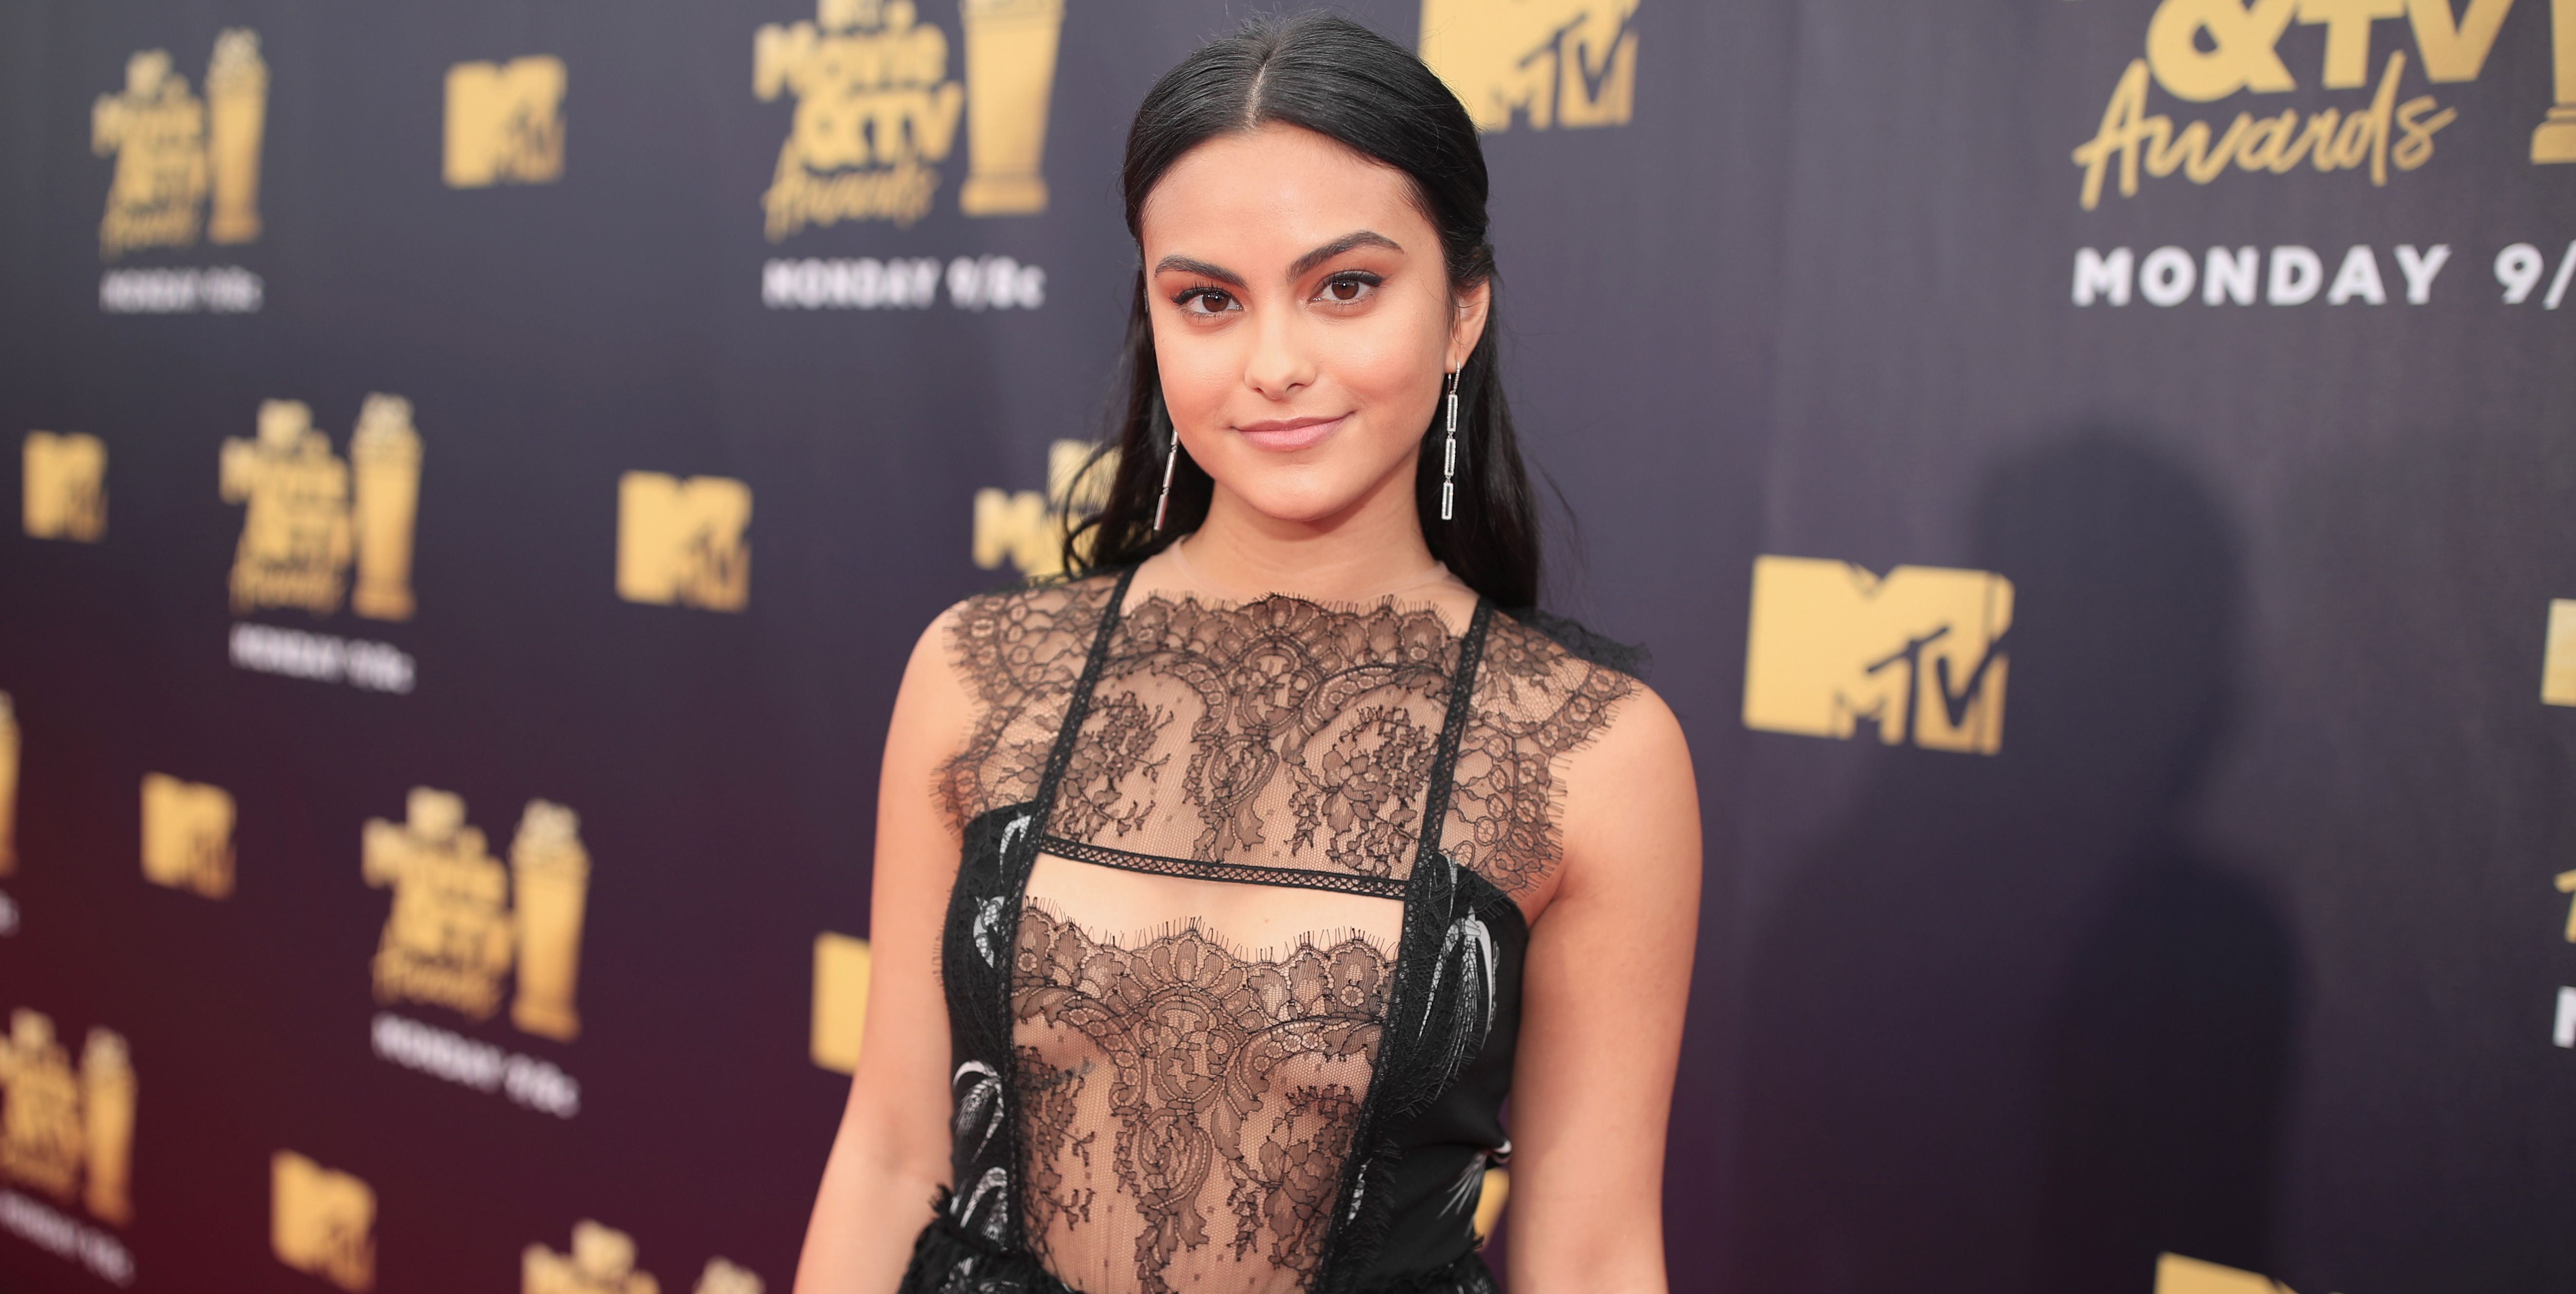 The 10 Nakedest Looks at the MTV Movie & TV Awards